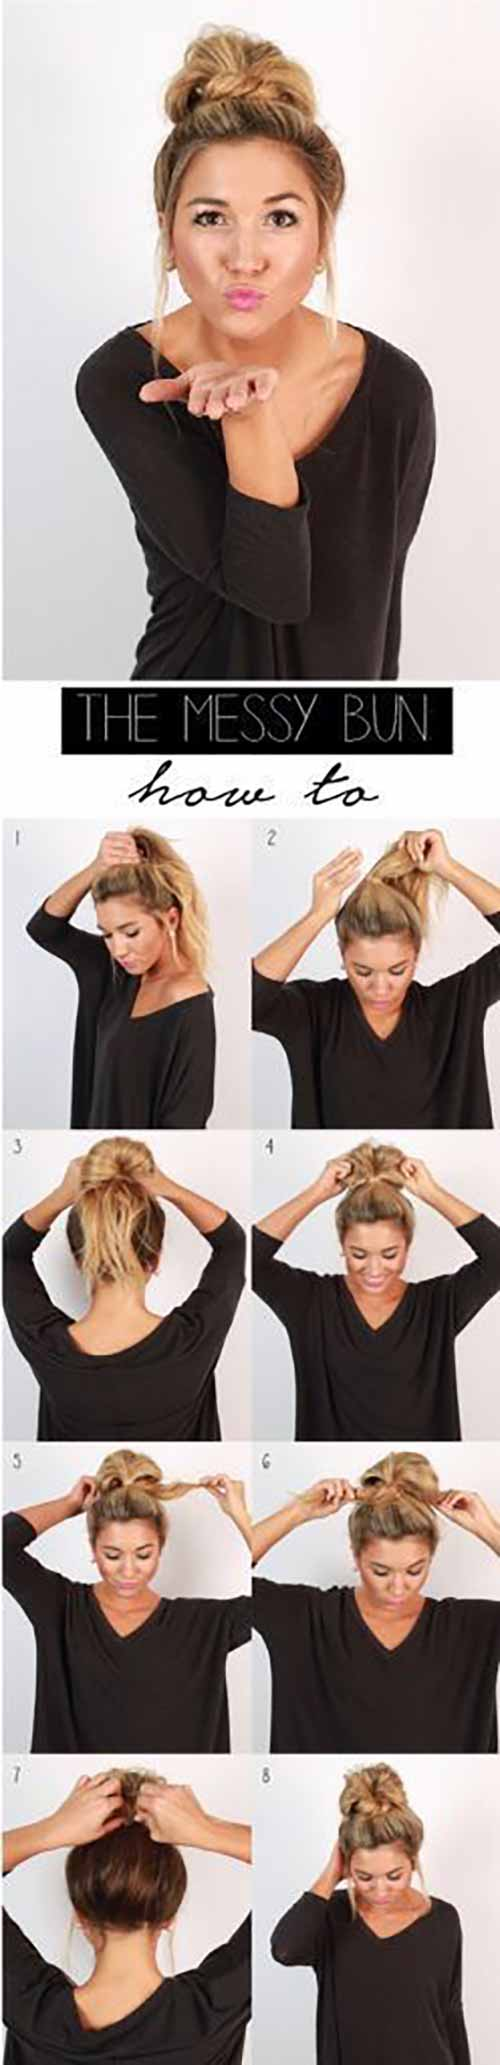 Updo Hairstyles - The Messy Bun